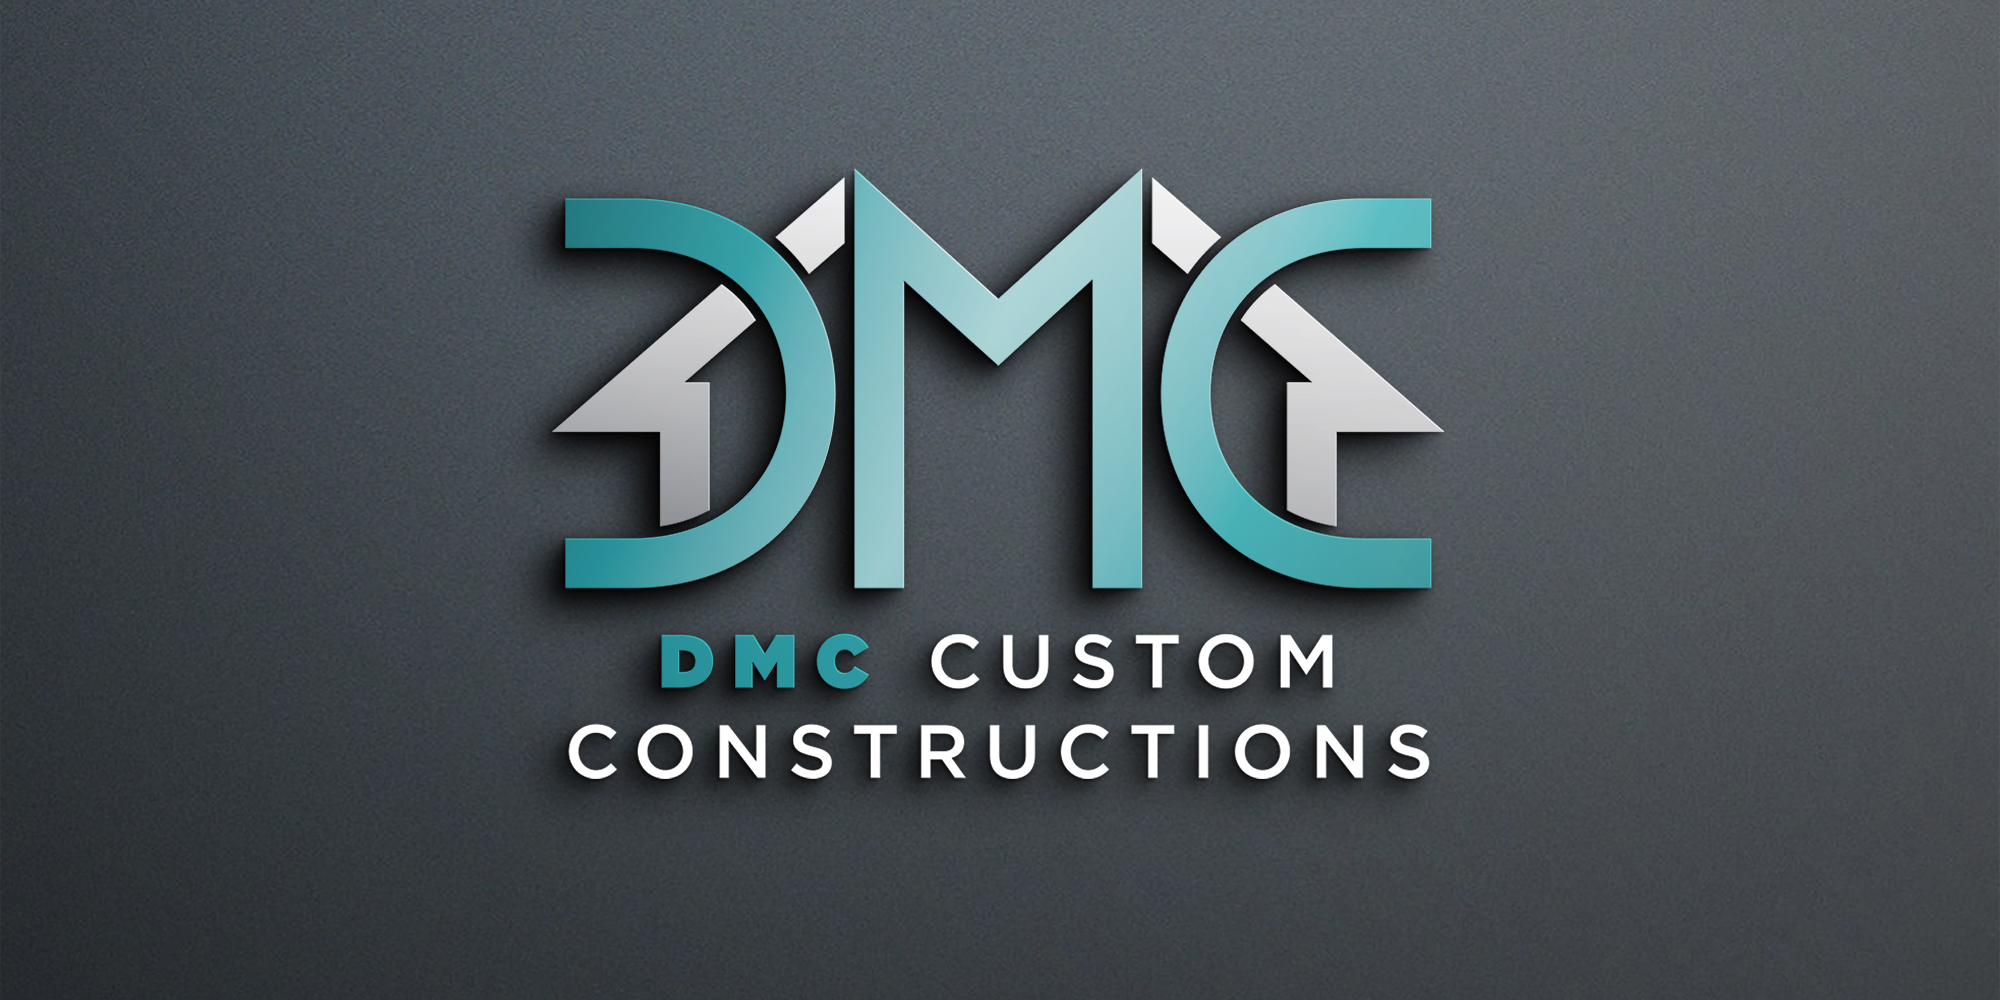 Professional Brand Design of Signage for a Construction Company